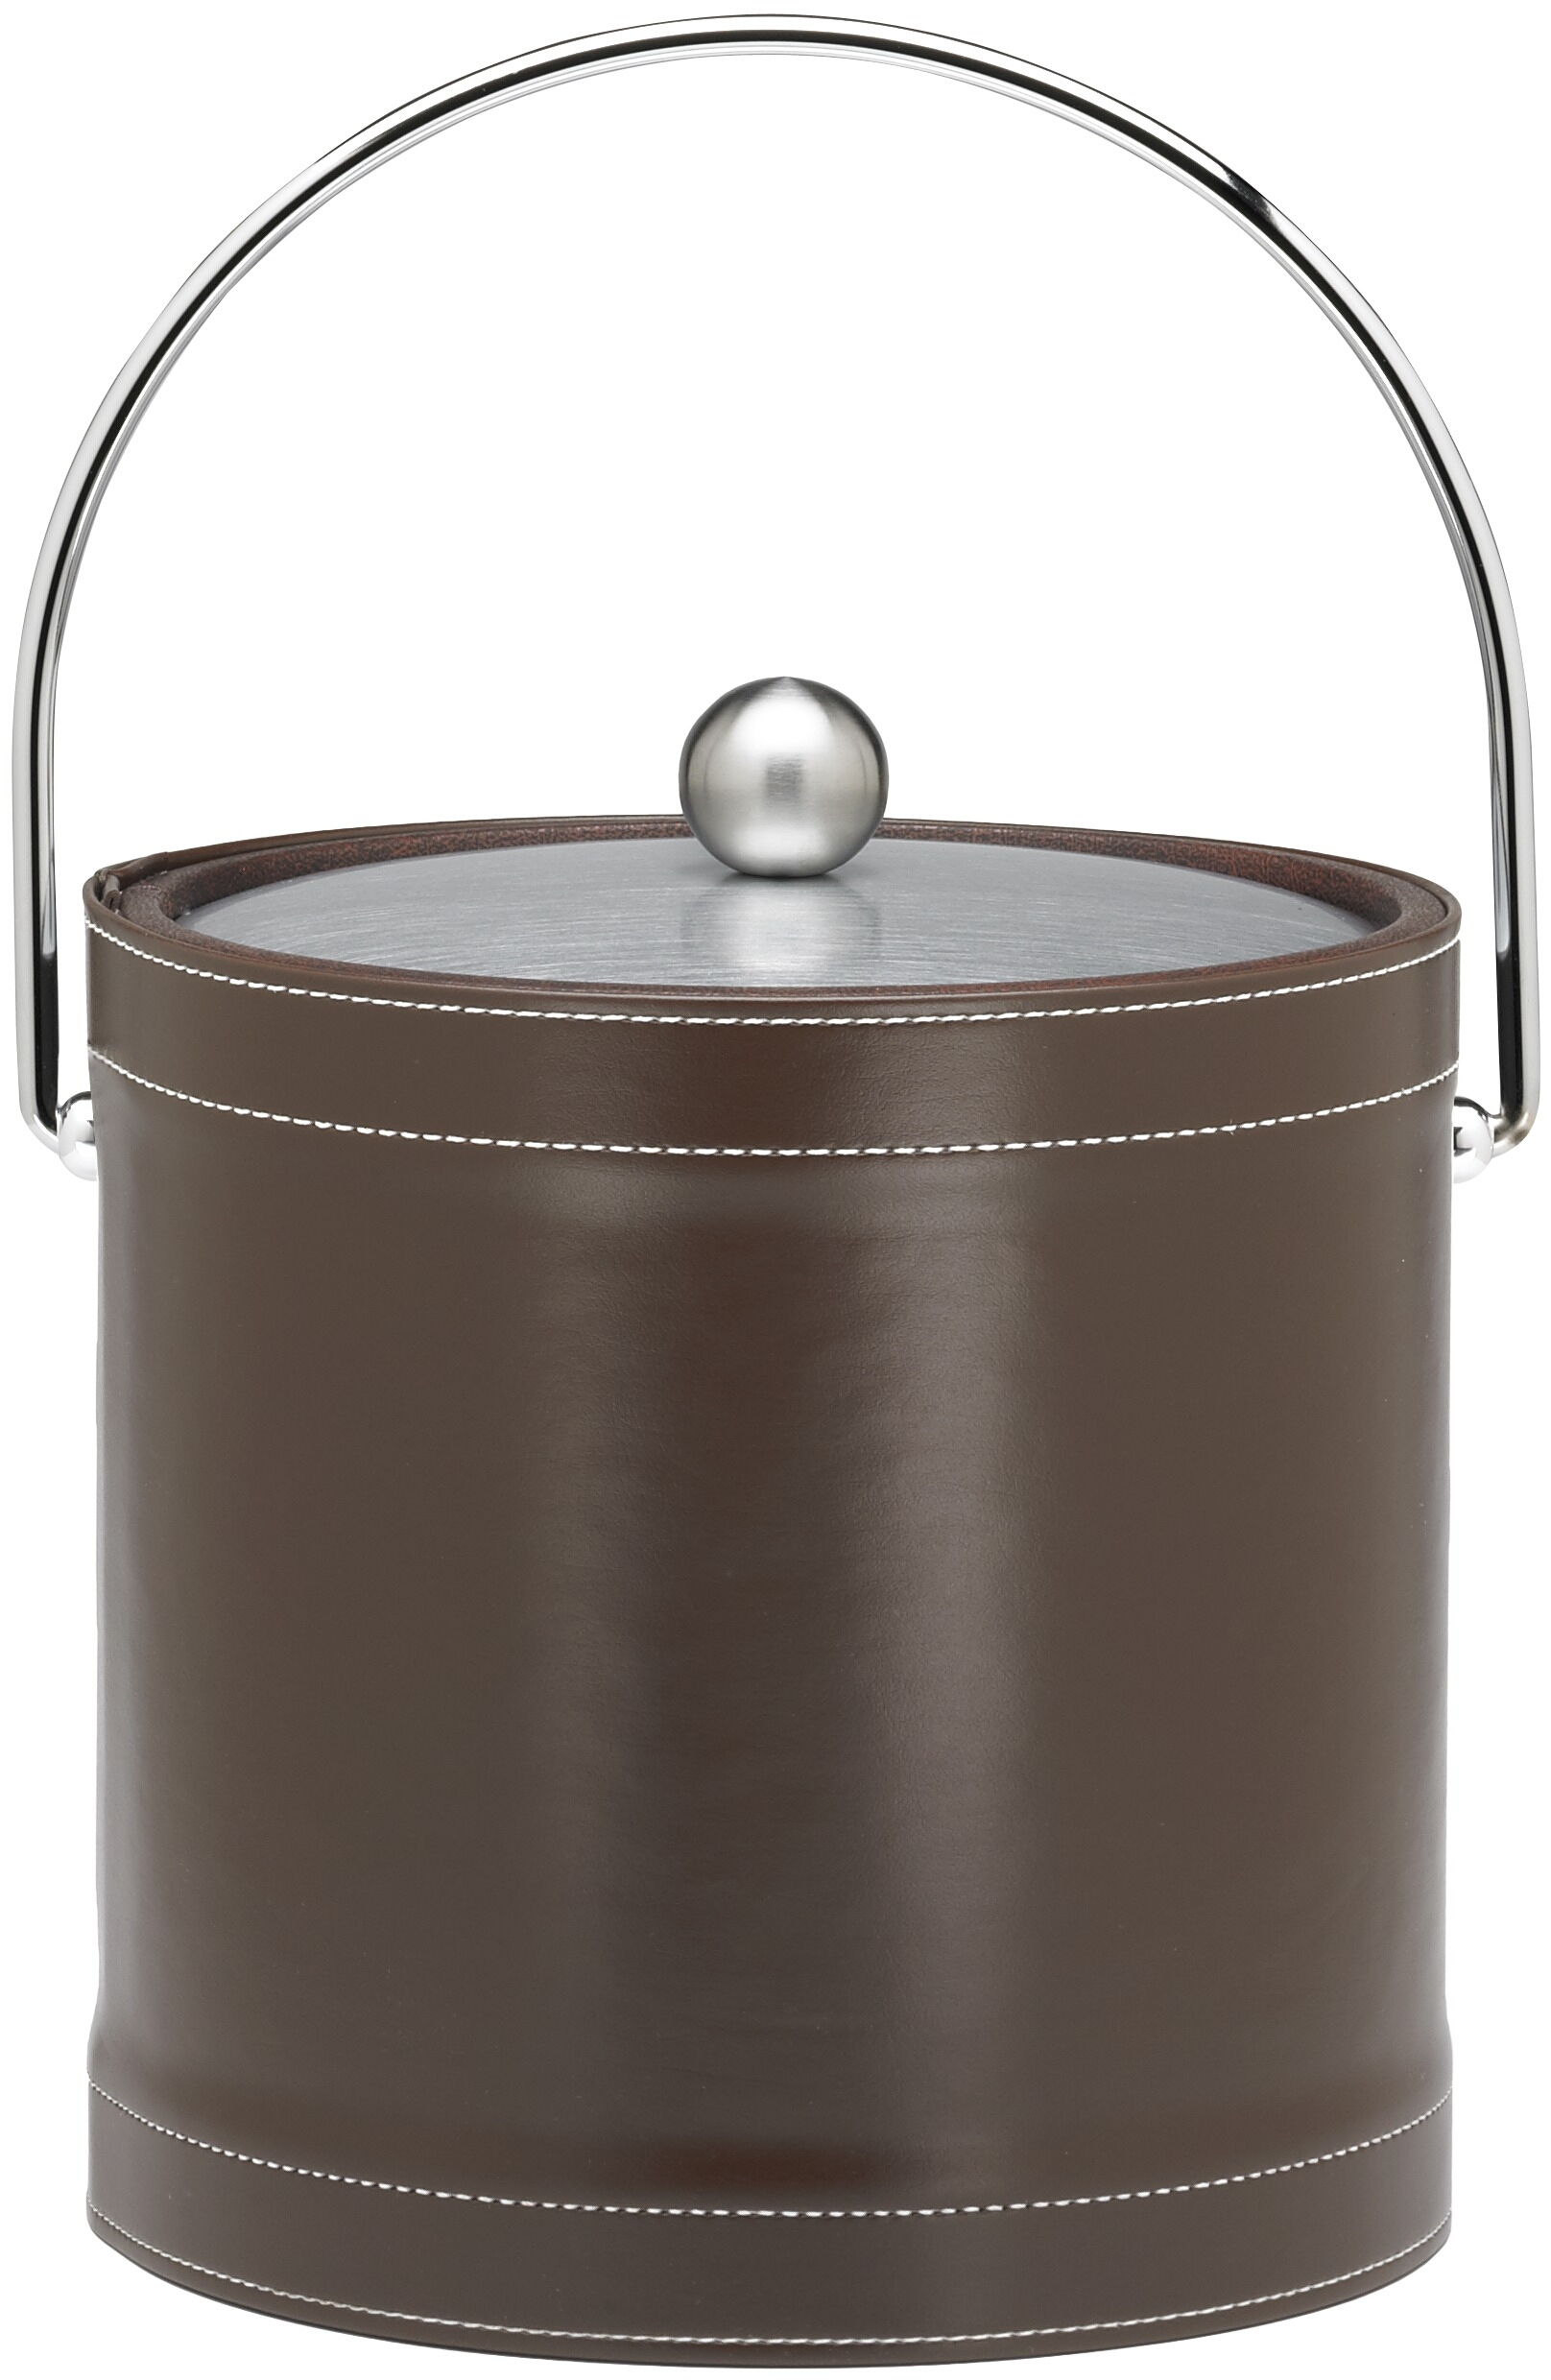 Kraftware Stitched Collection Chocolate Stitched 3 Quart Ice Bucket With Bale Handle